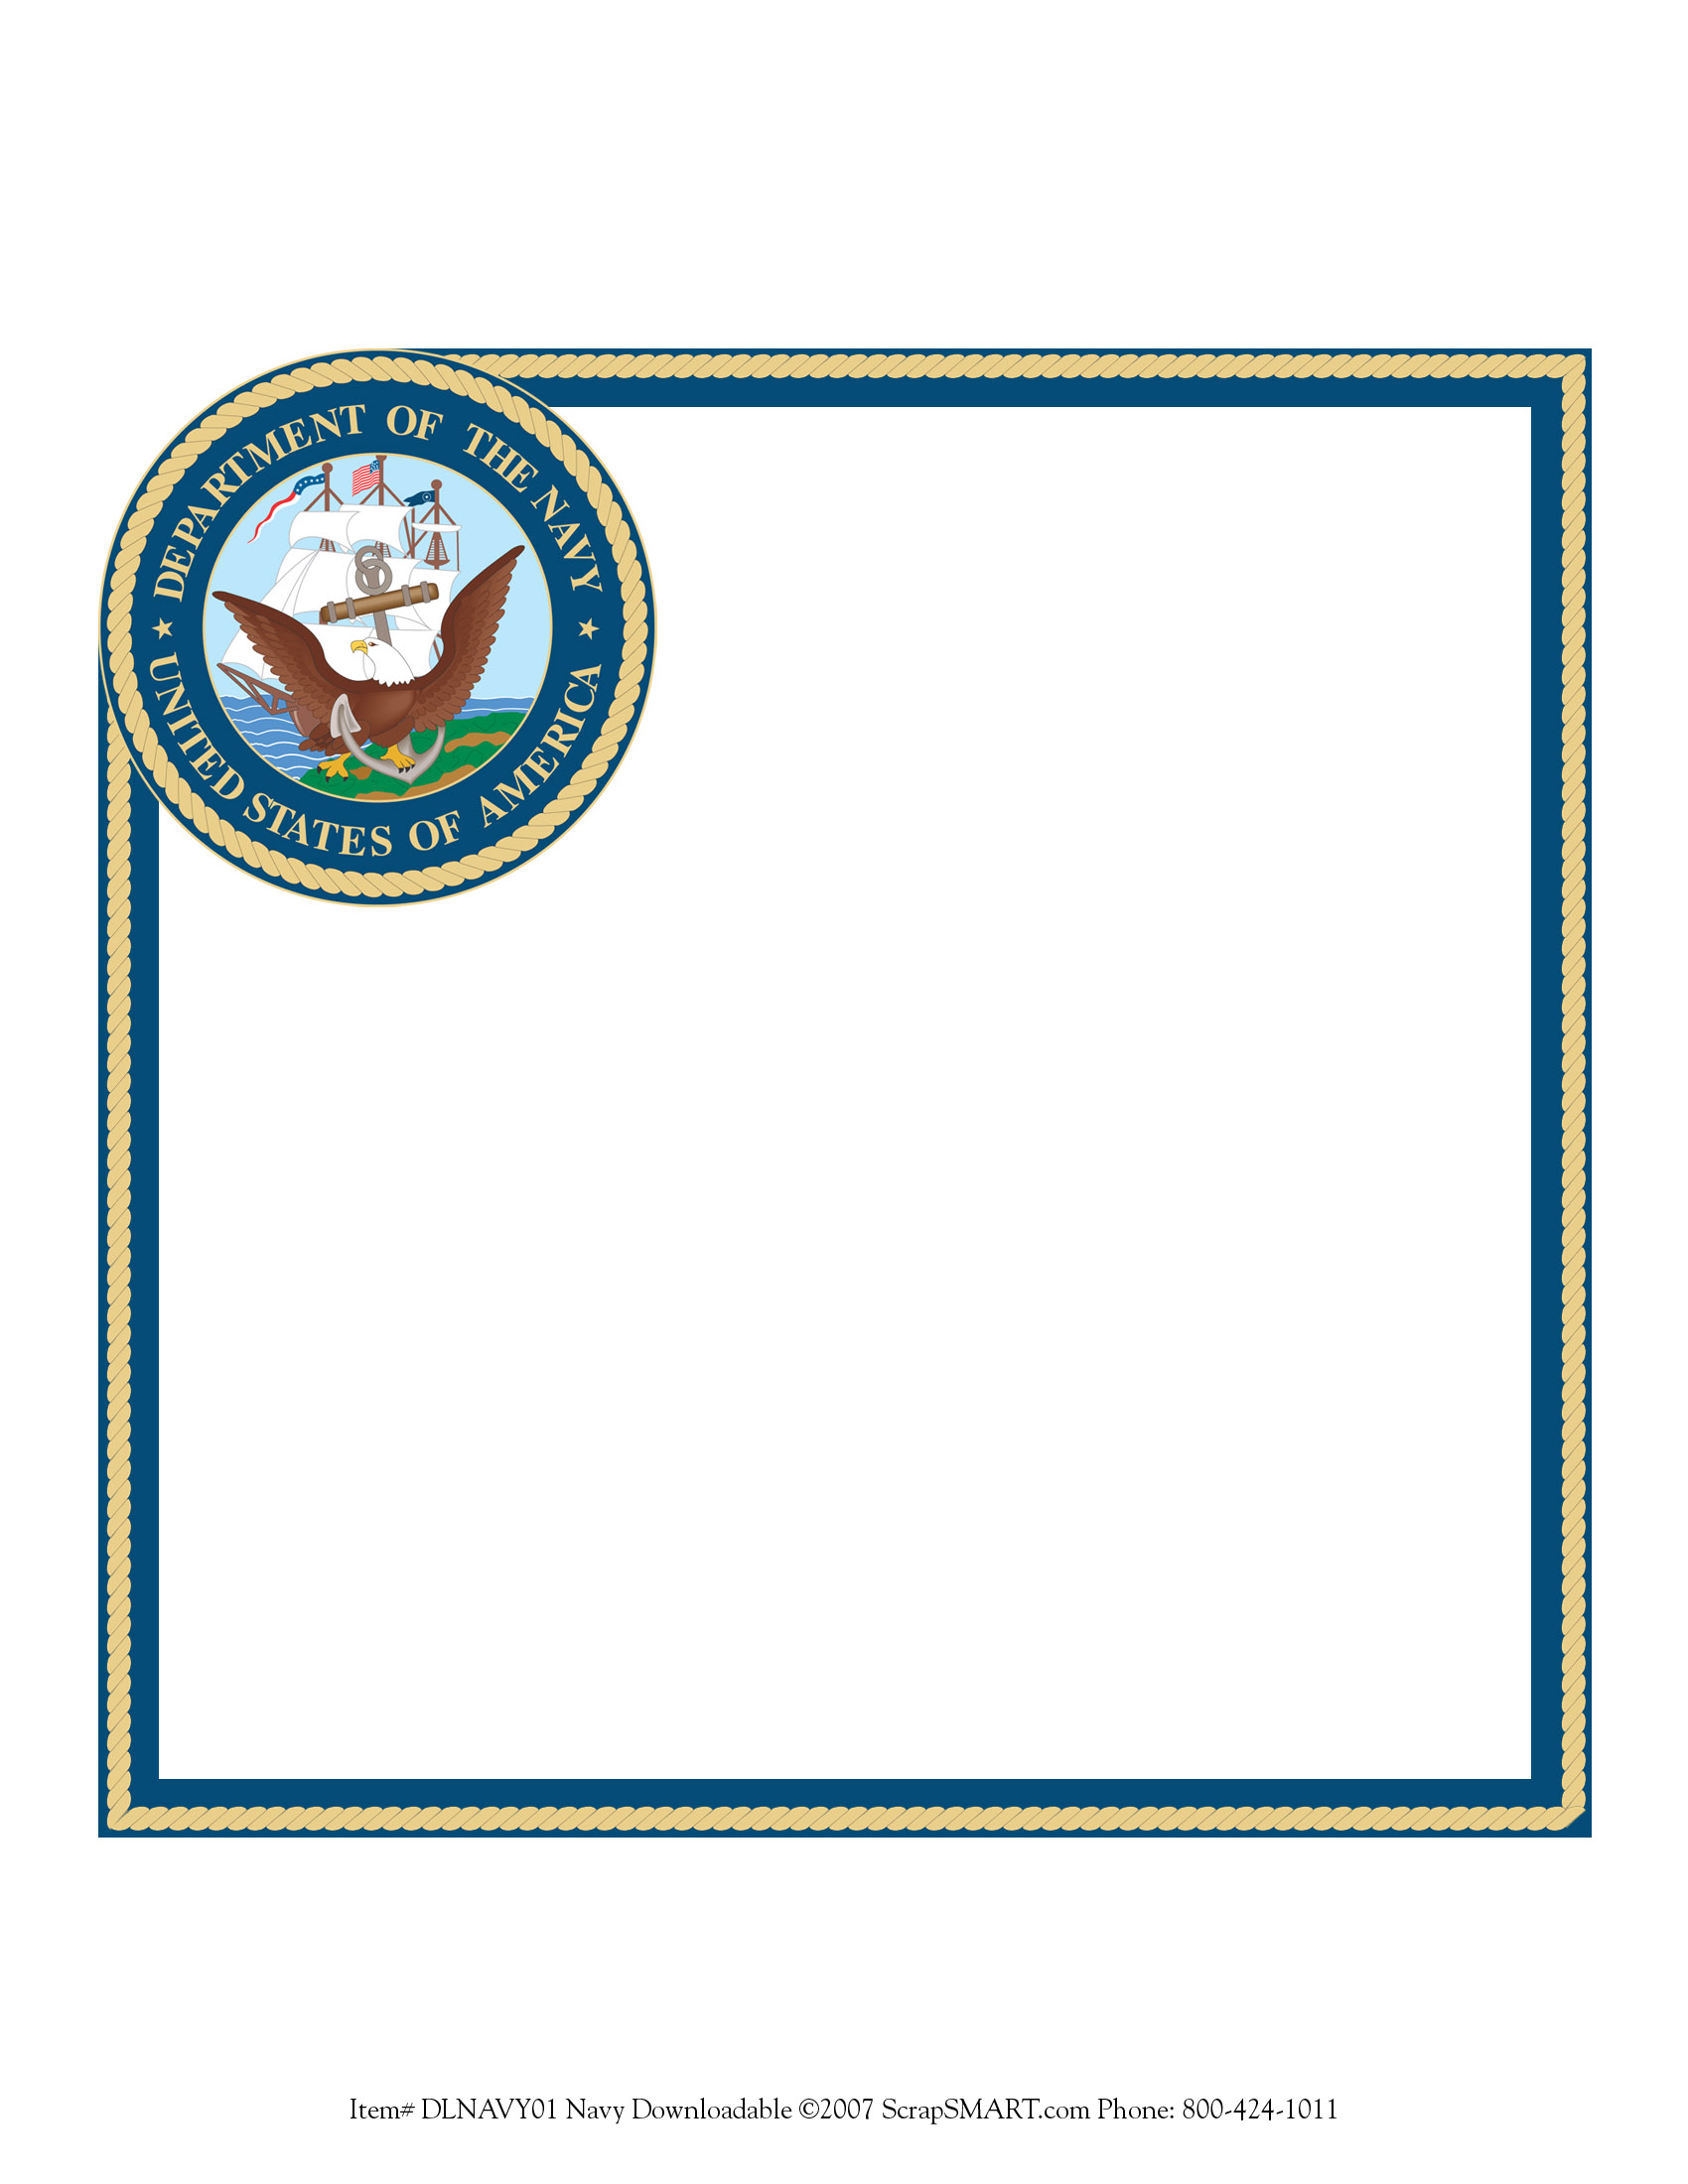 jpeg format use our free graphics program to customize - Military Frames